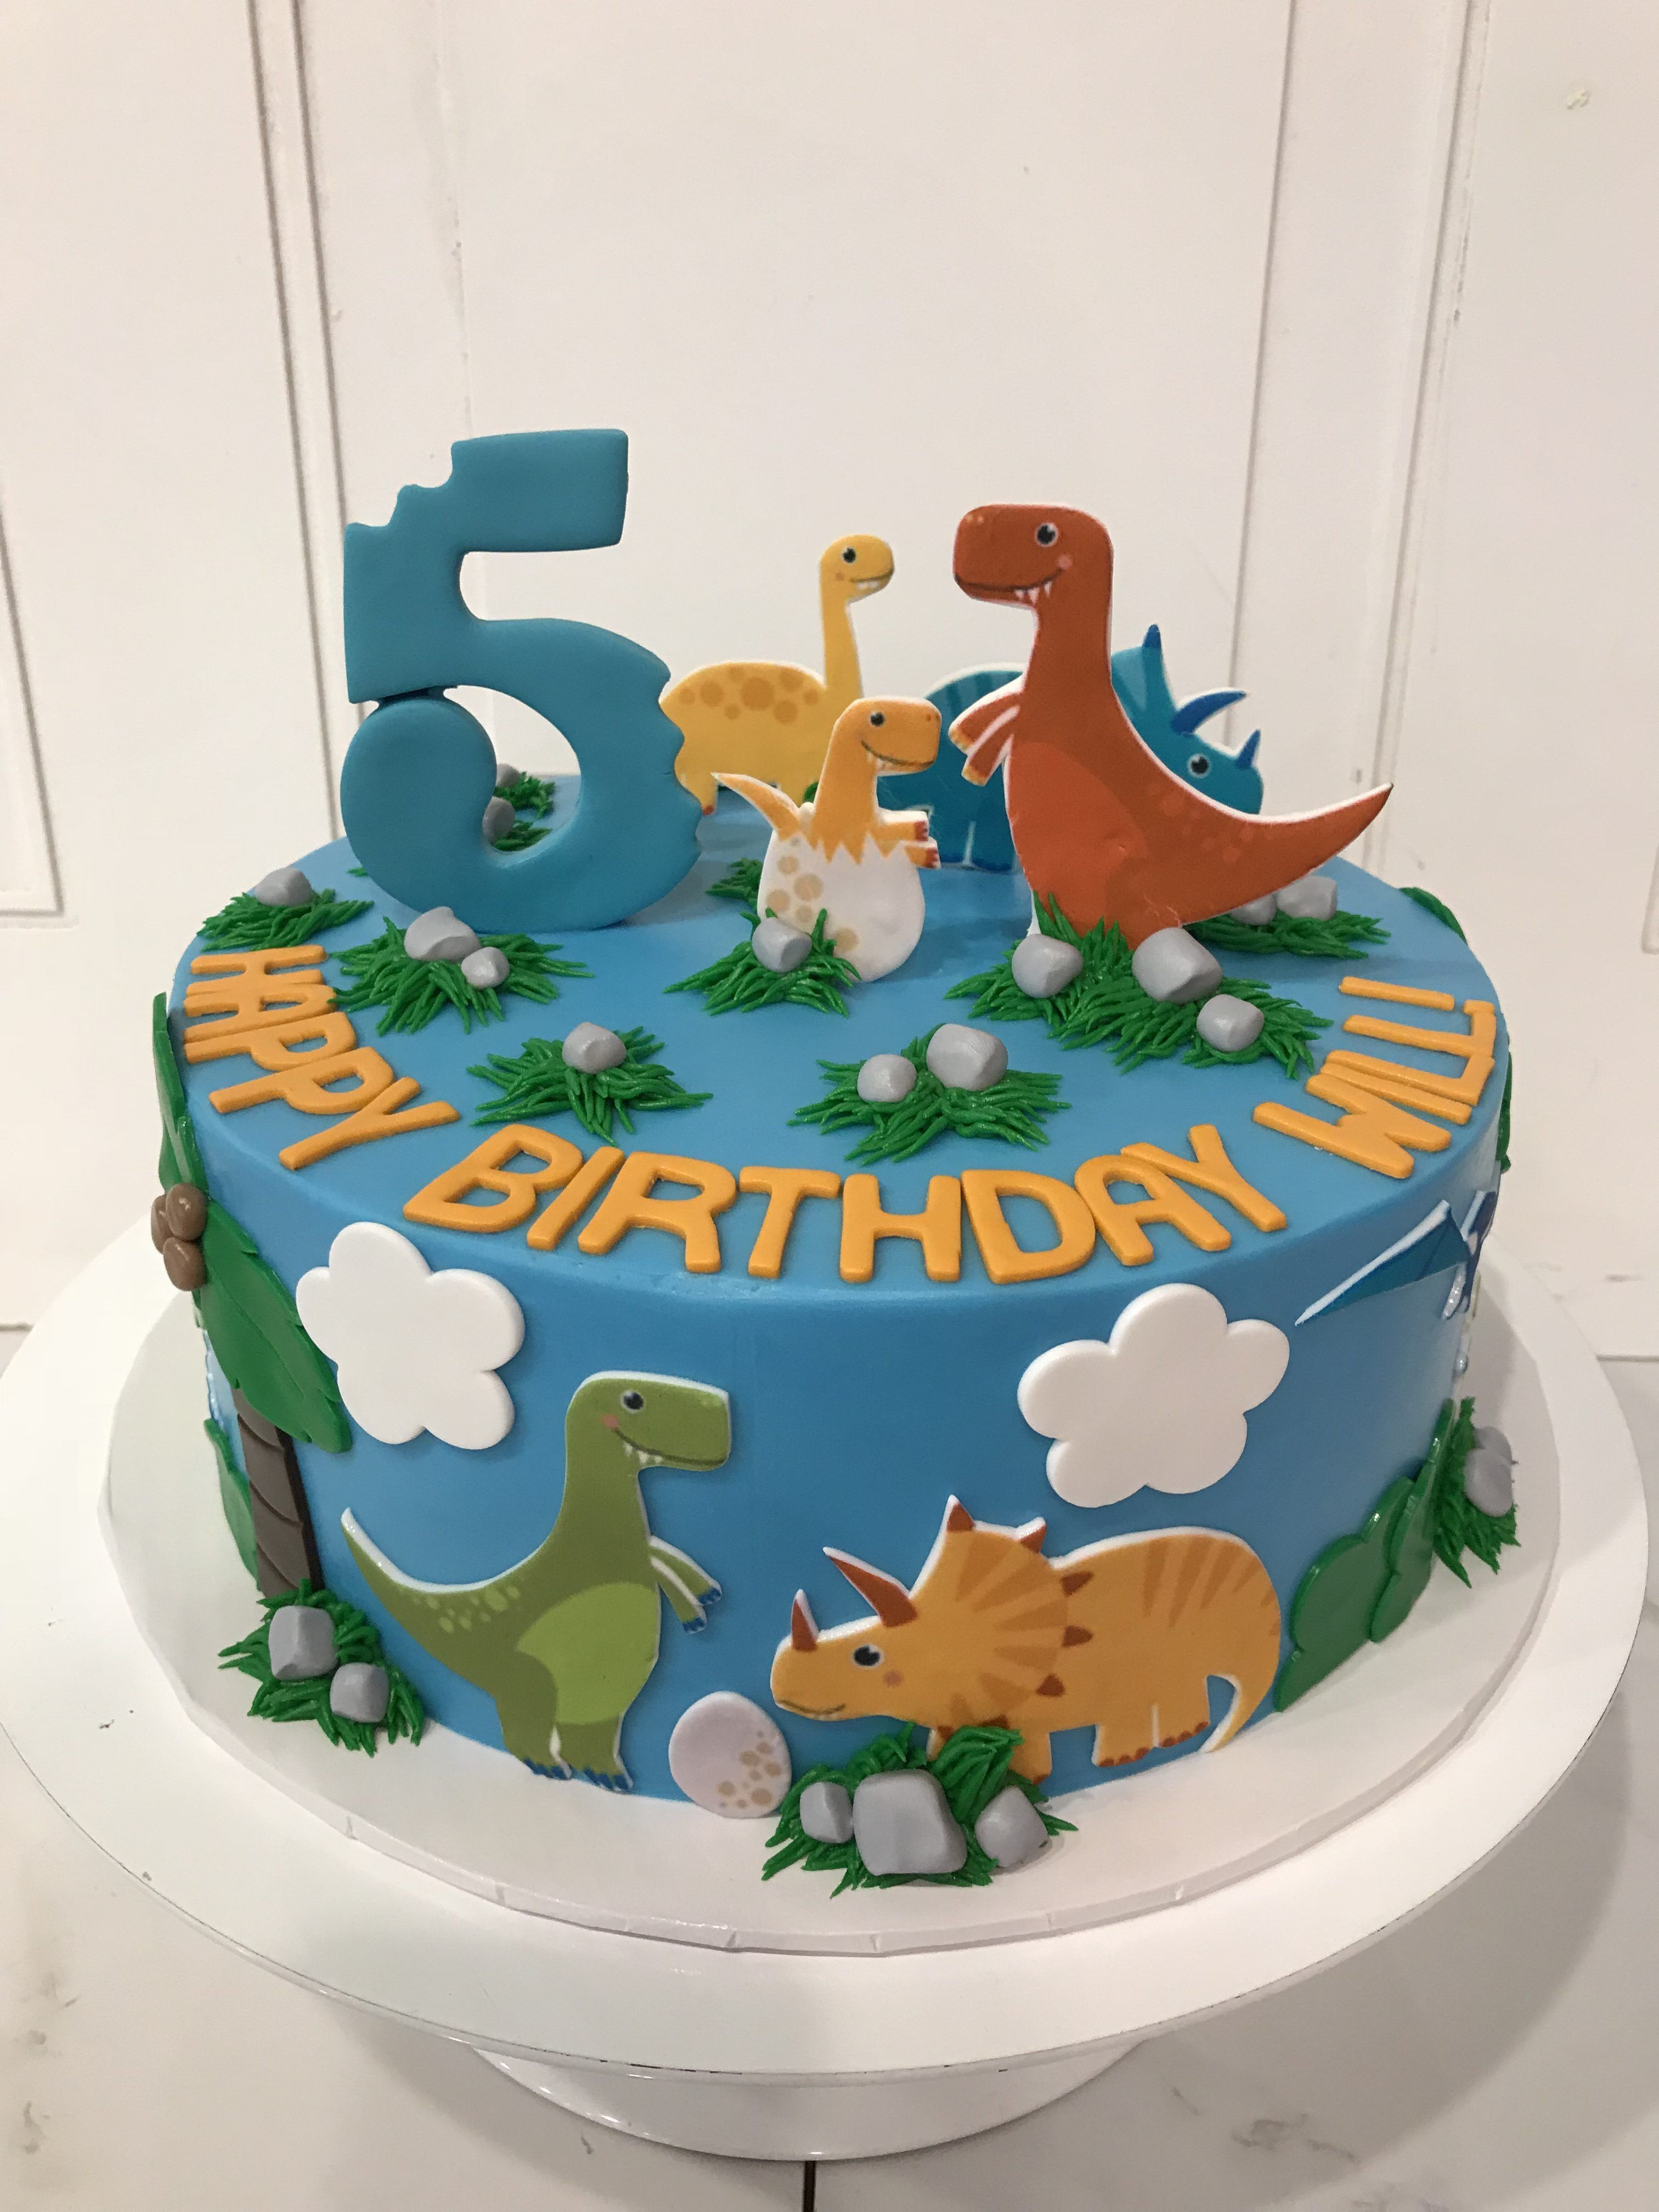 Children's Birthday Cakes That Are Unique And Delicious